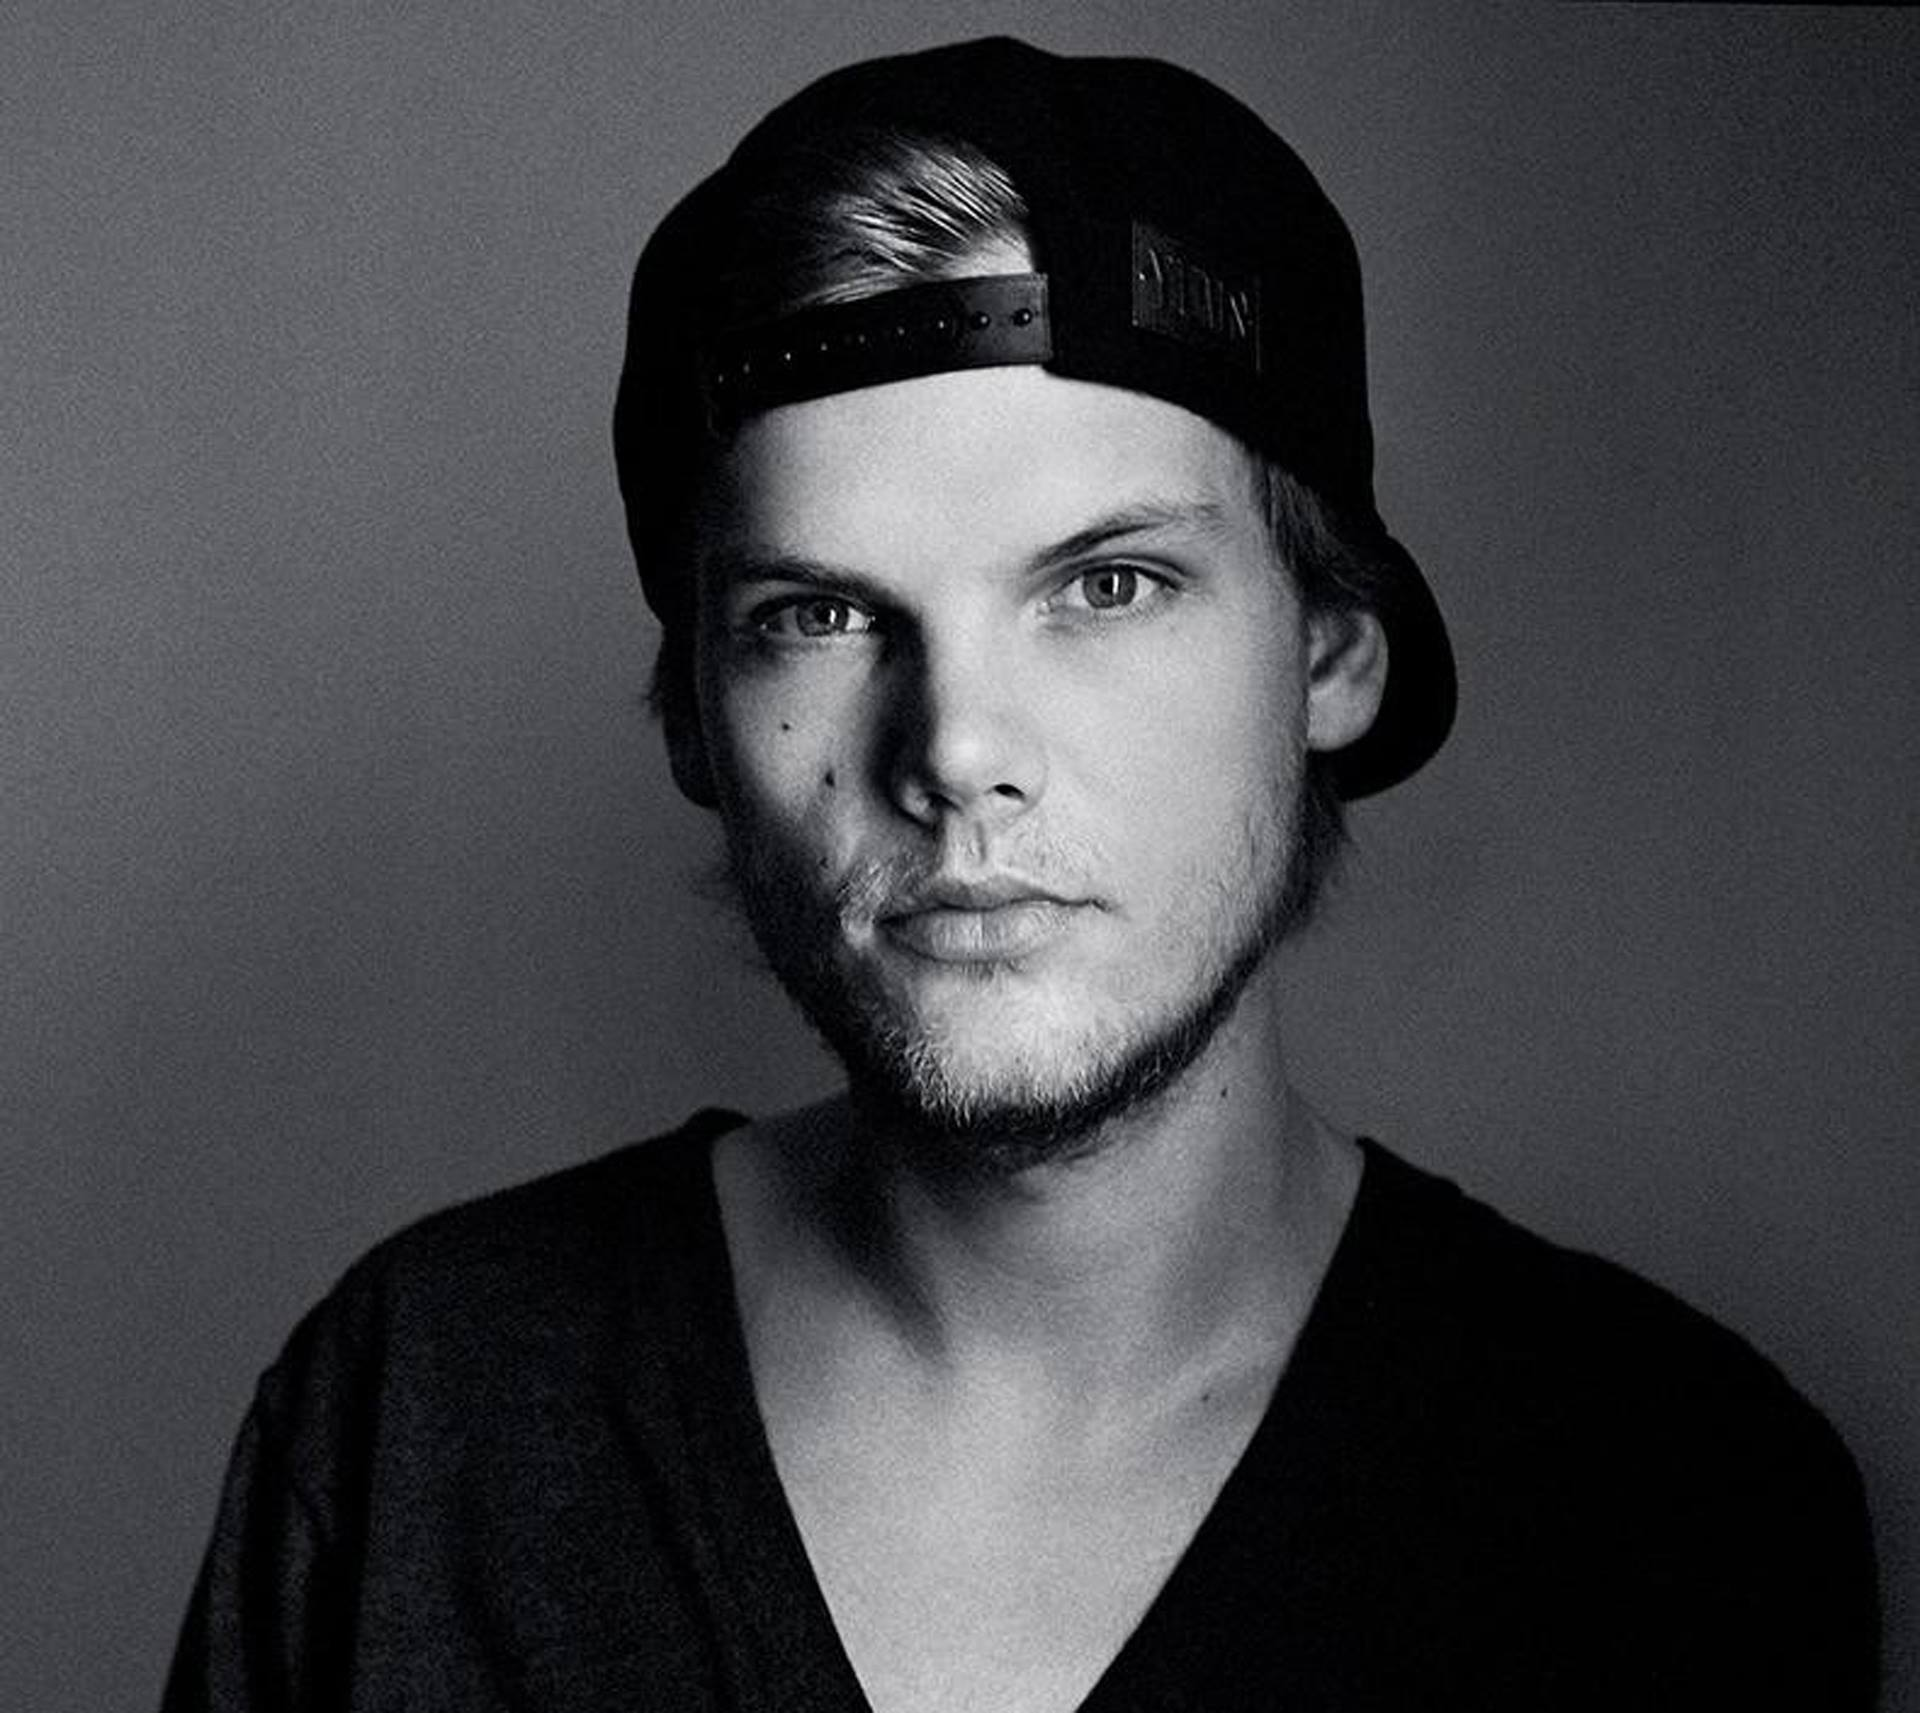 AVICII HAS UPDATED HIS WEBSITE WITH PROMISE OF RETURN IN 2017